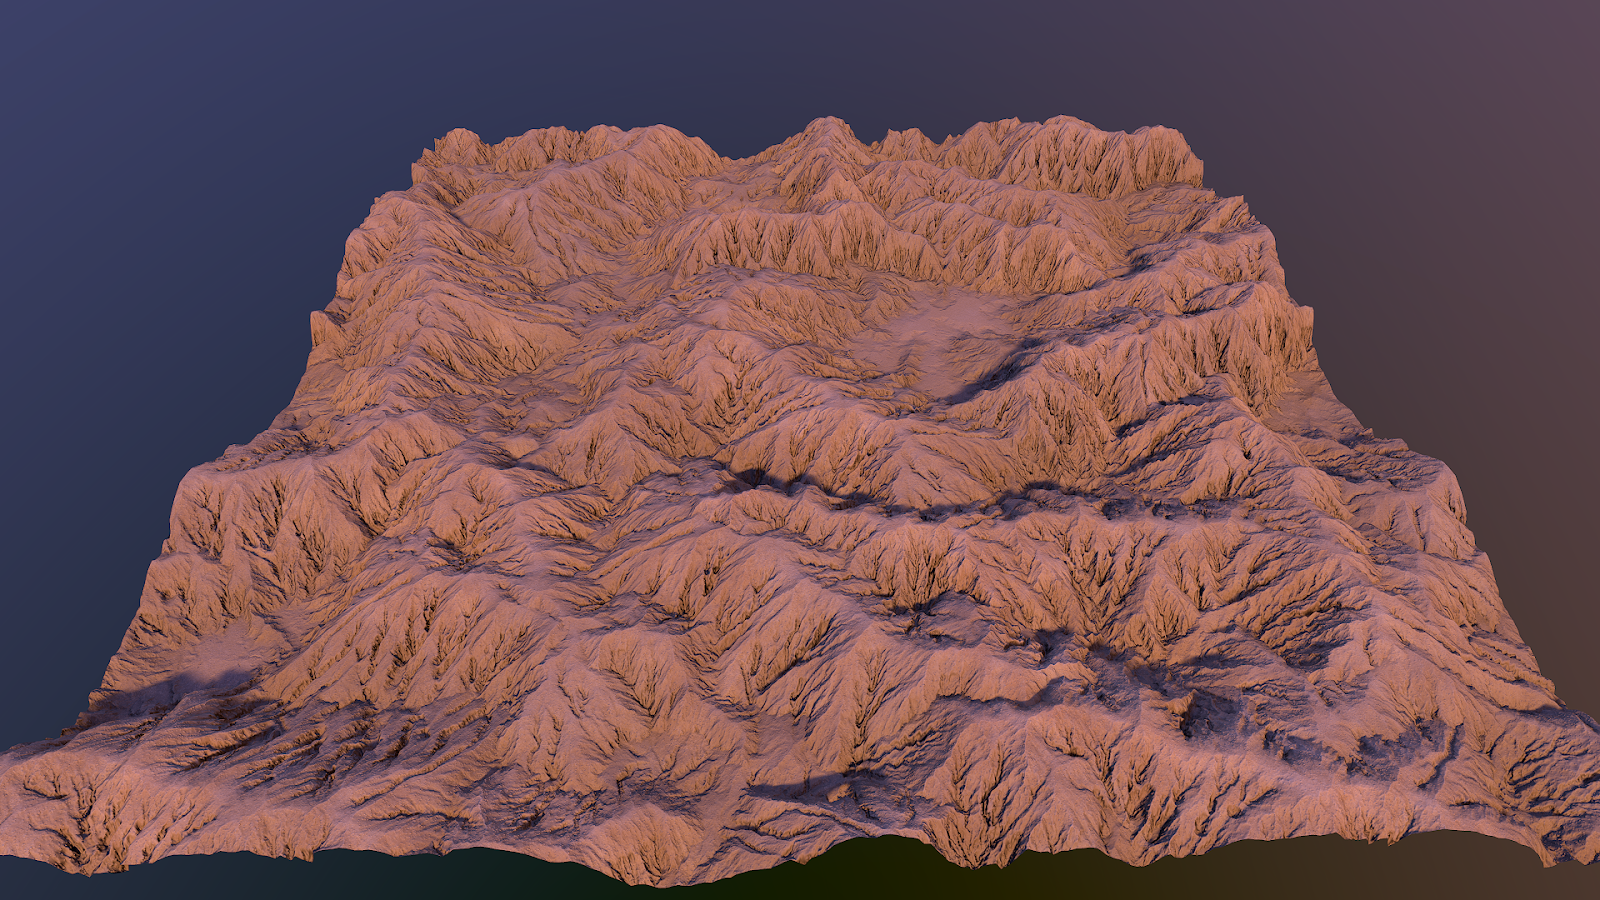 Desert mountains material PBR tessellation unreal4 unity day light setup Igor Novik 3d artist